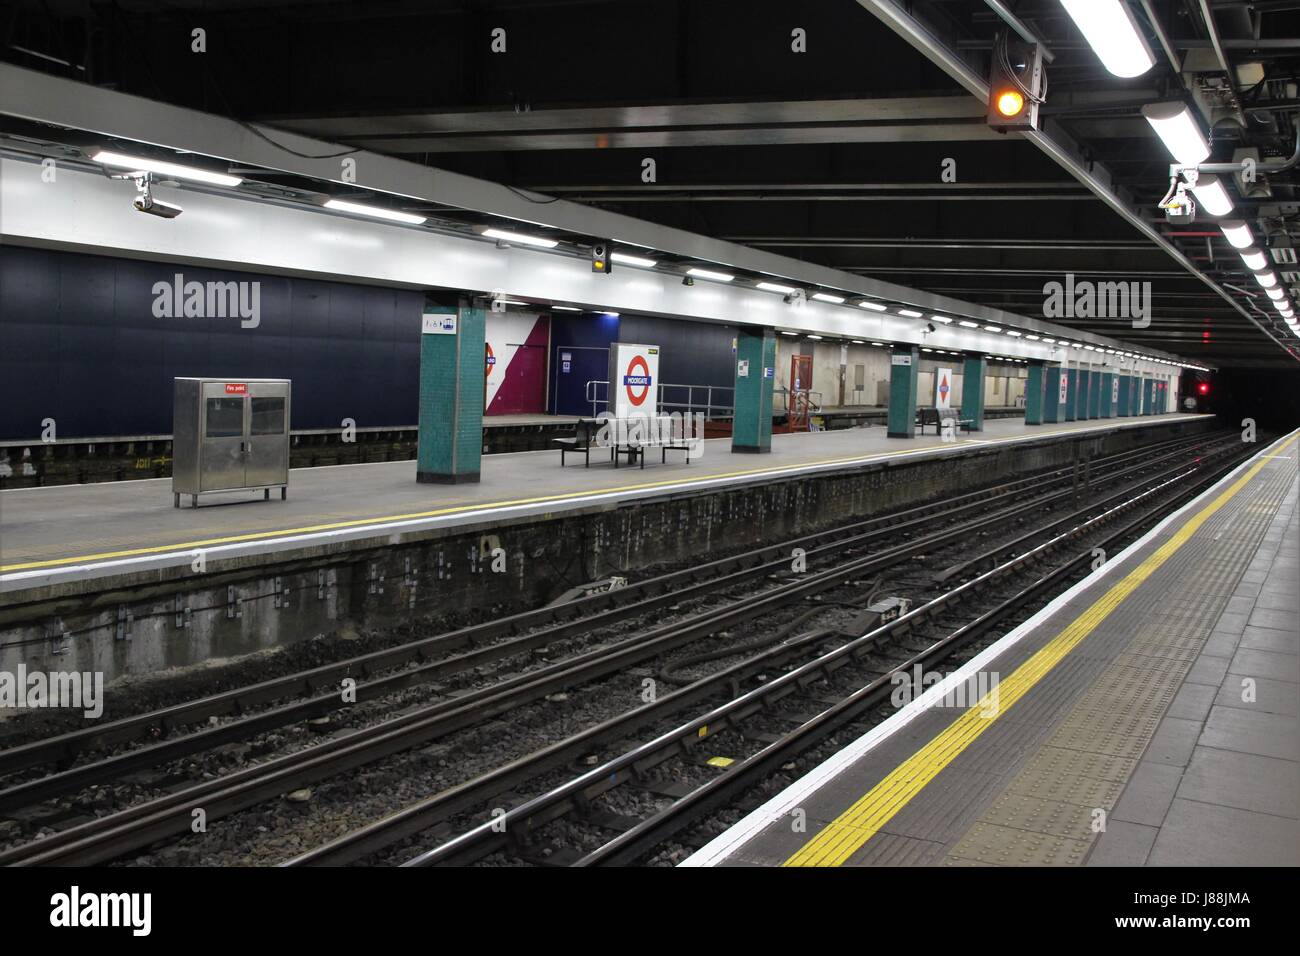 Moorgate underground station with tube signs visible, East London - Stock Image